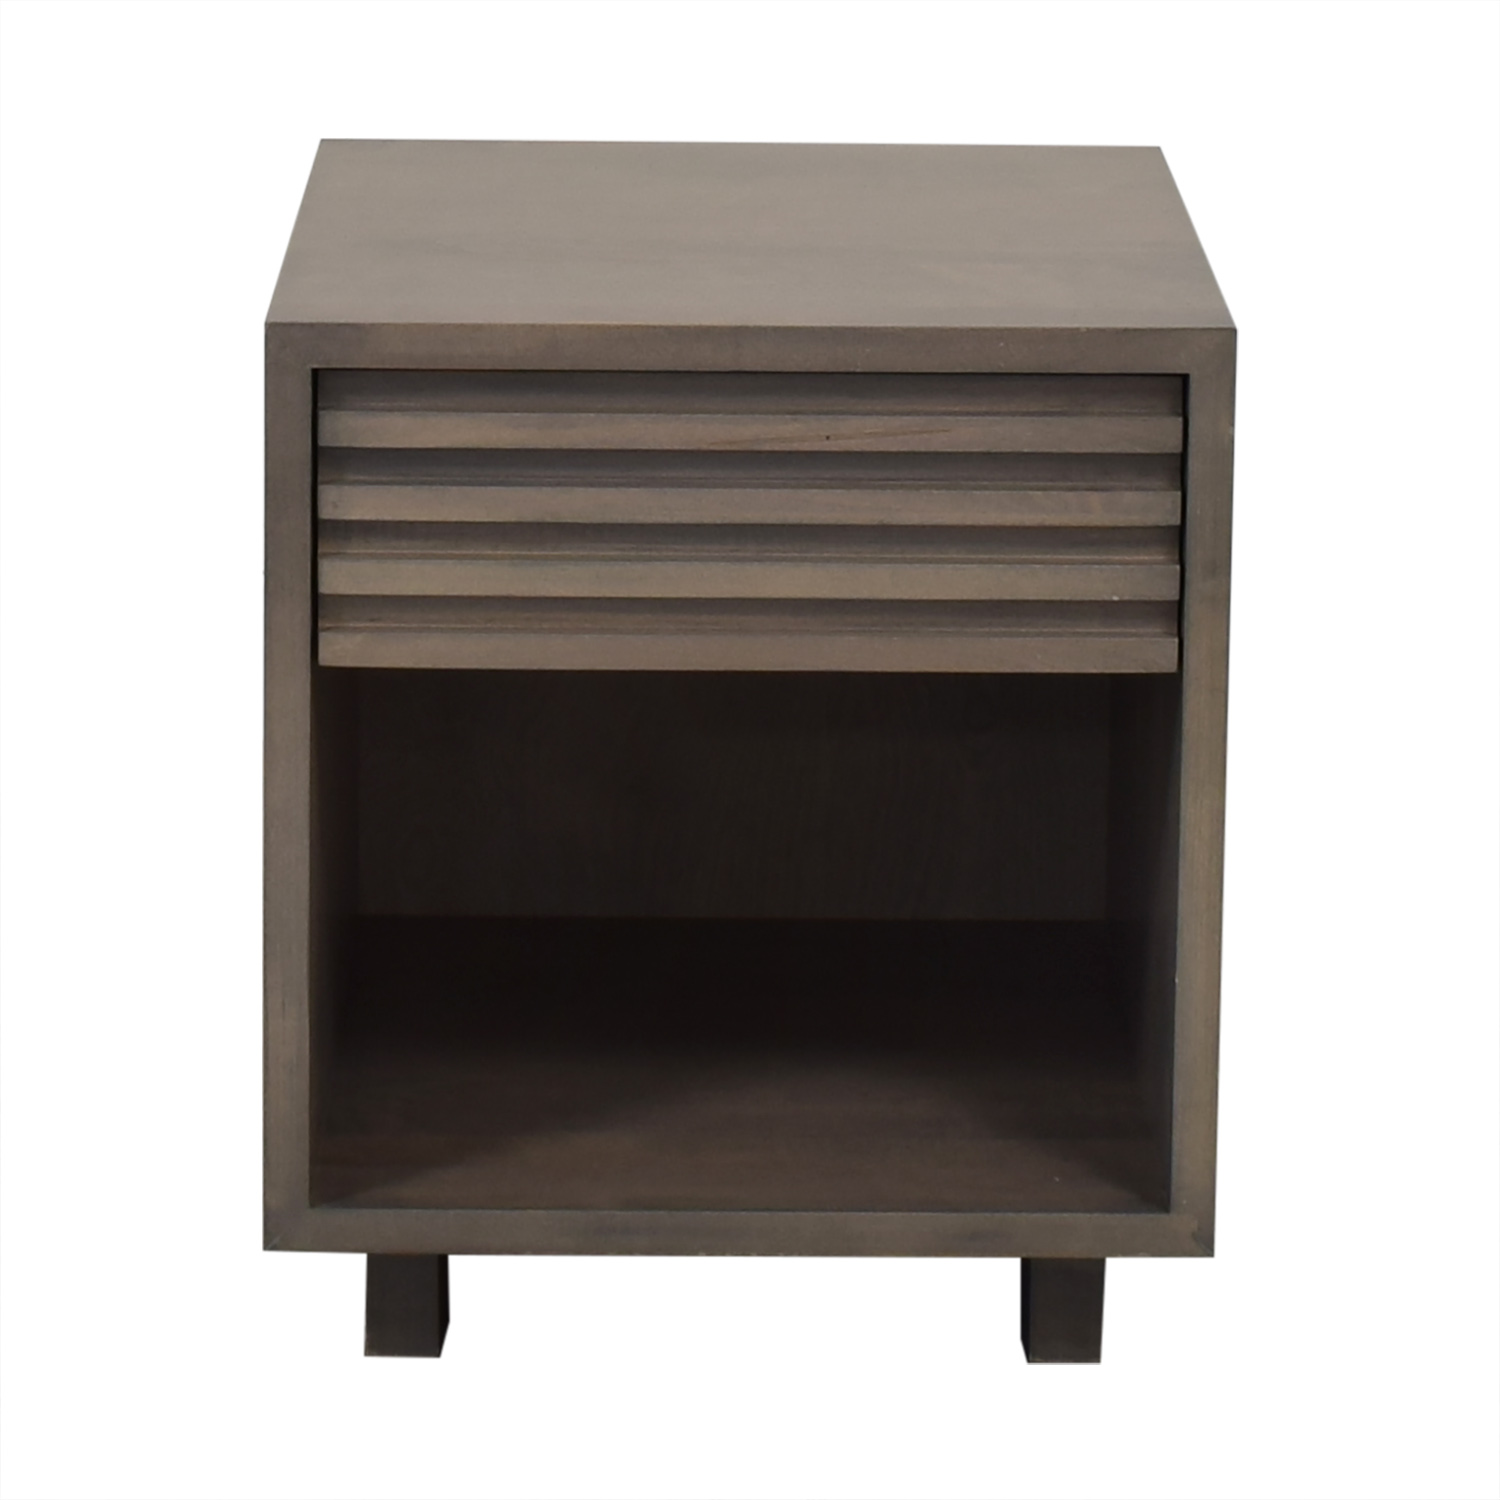 Room & Board Room & Board Moro Single Drawer Nightstand price